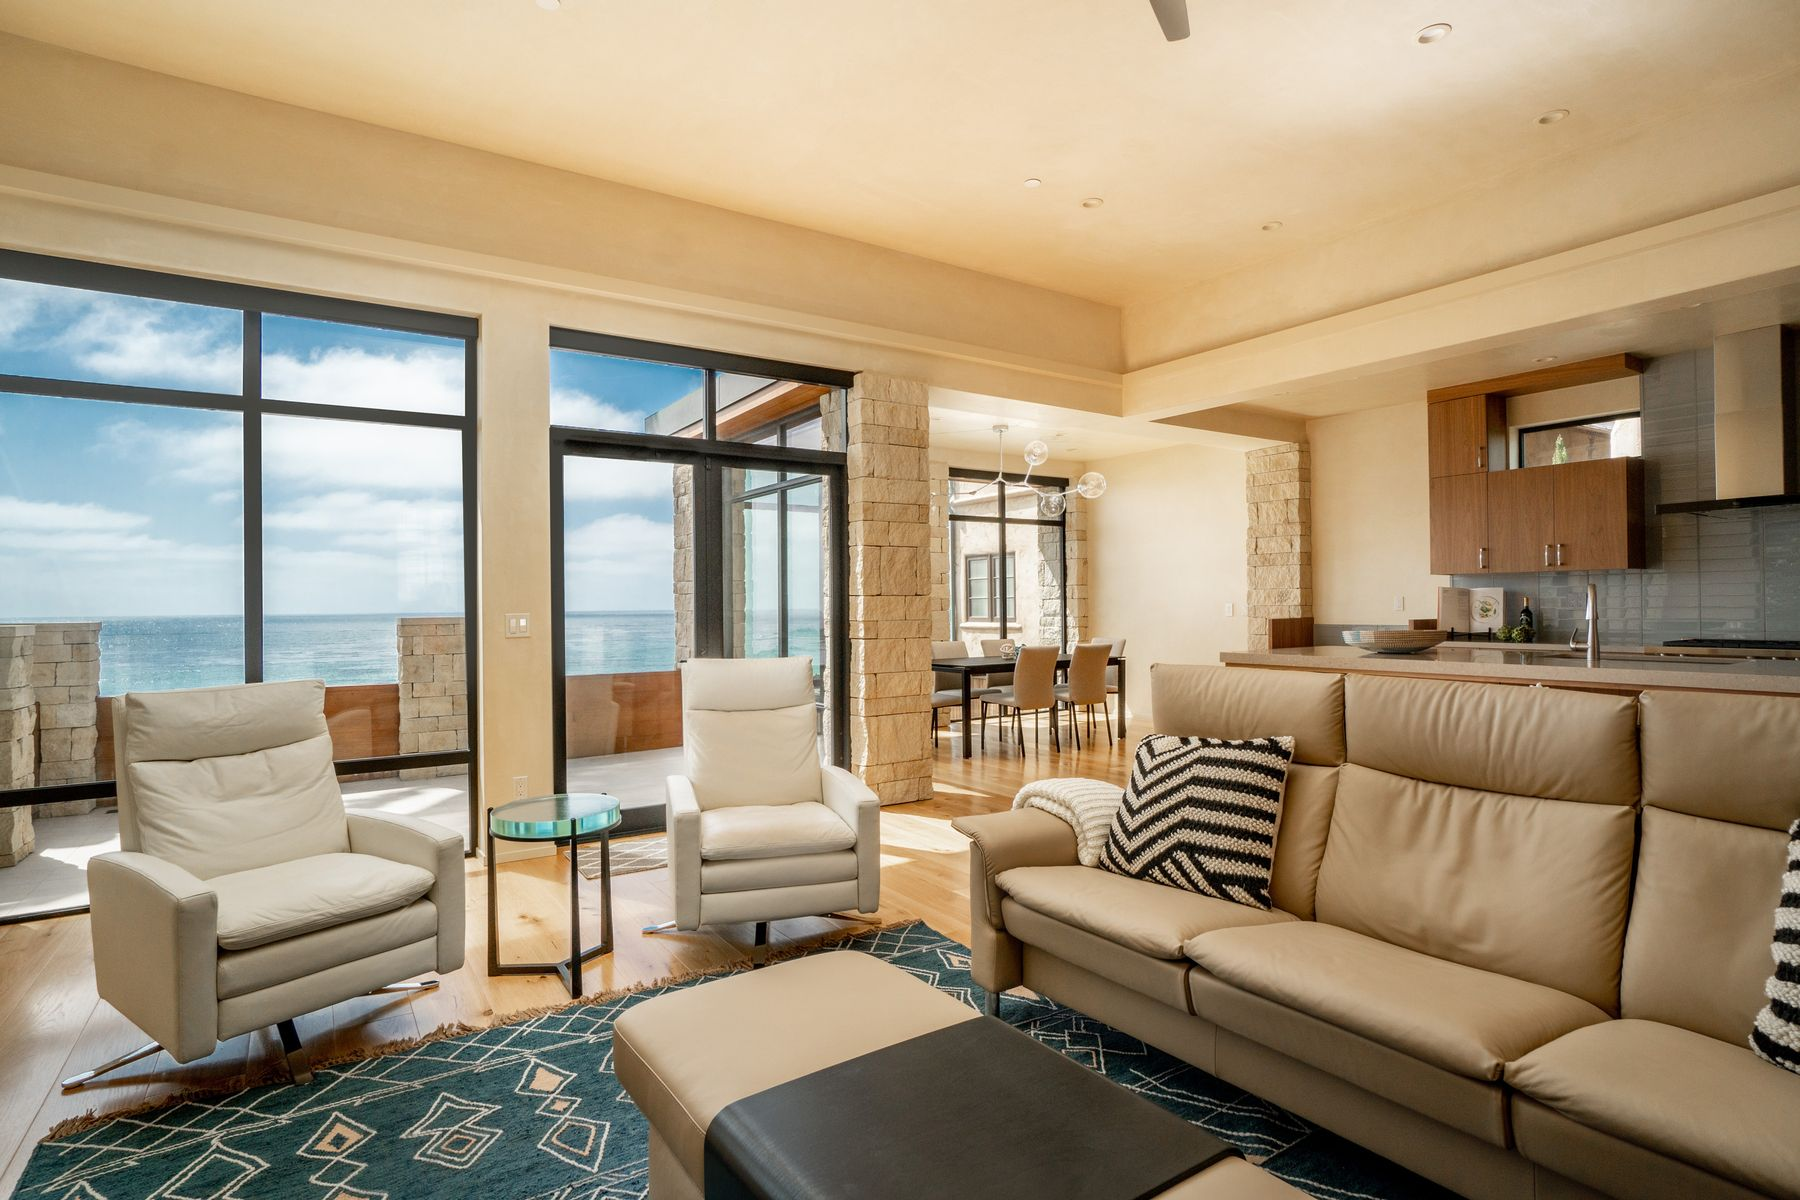 Single Family Homes for Sale at Modern Beach House on Scenic Road 0 Scenic 4 Ne Of 13th Carmel By The Sea, California 93921 United States